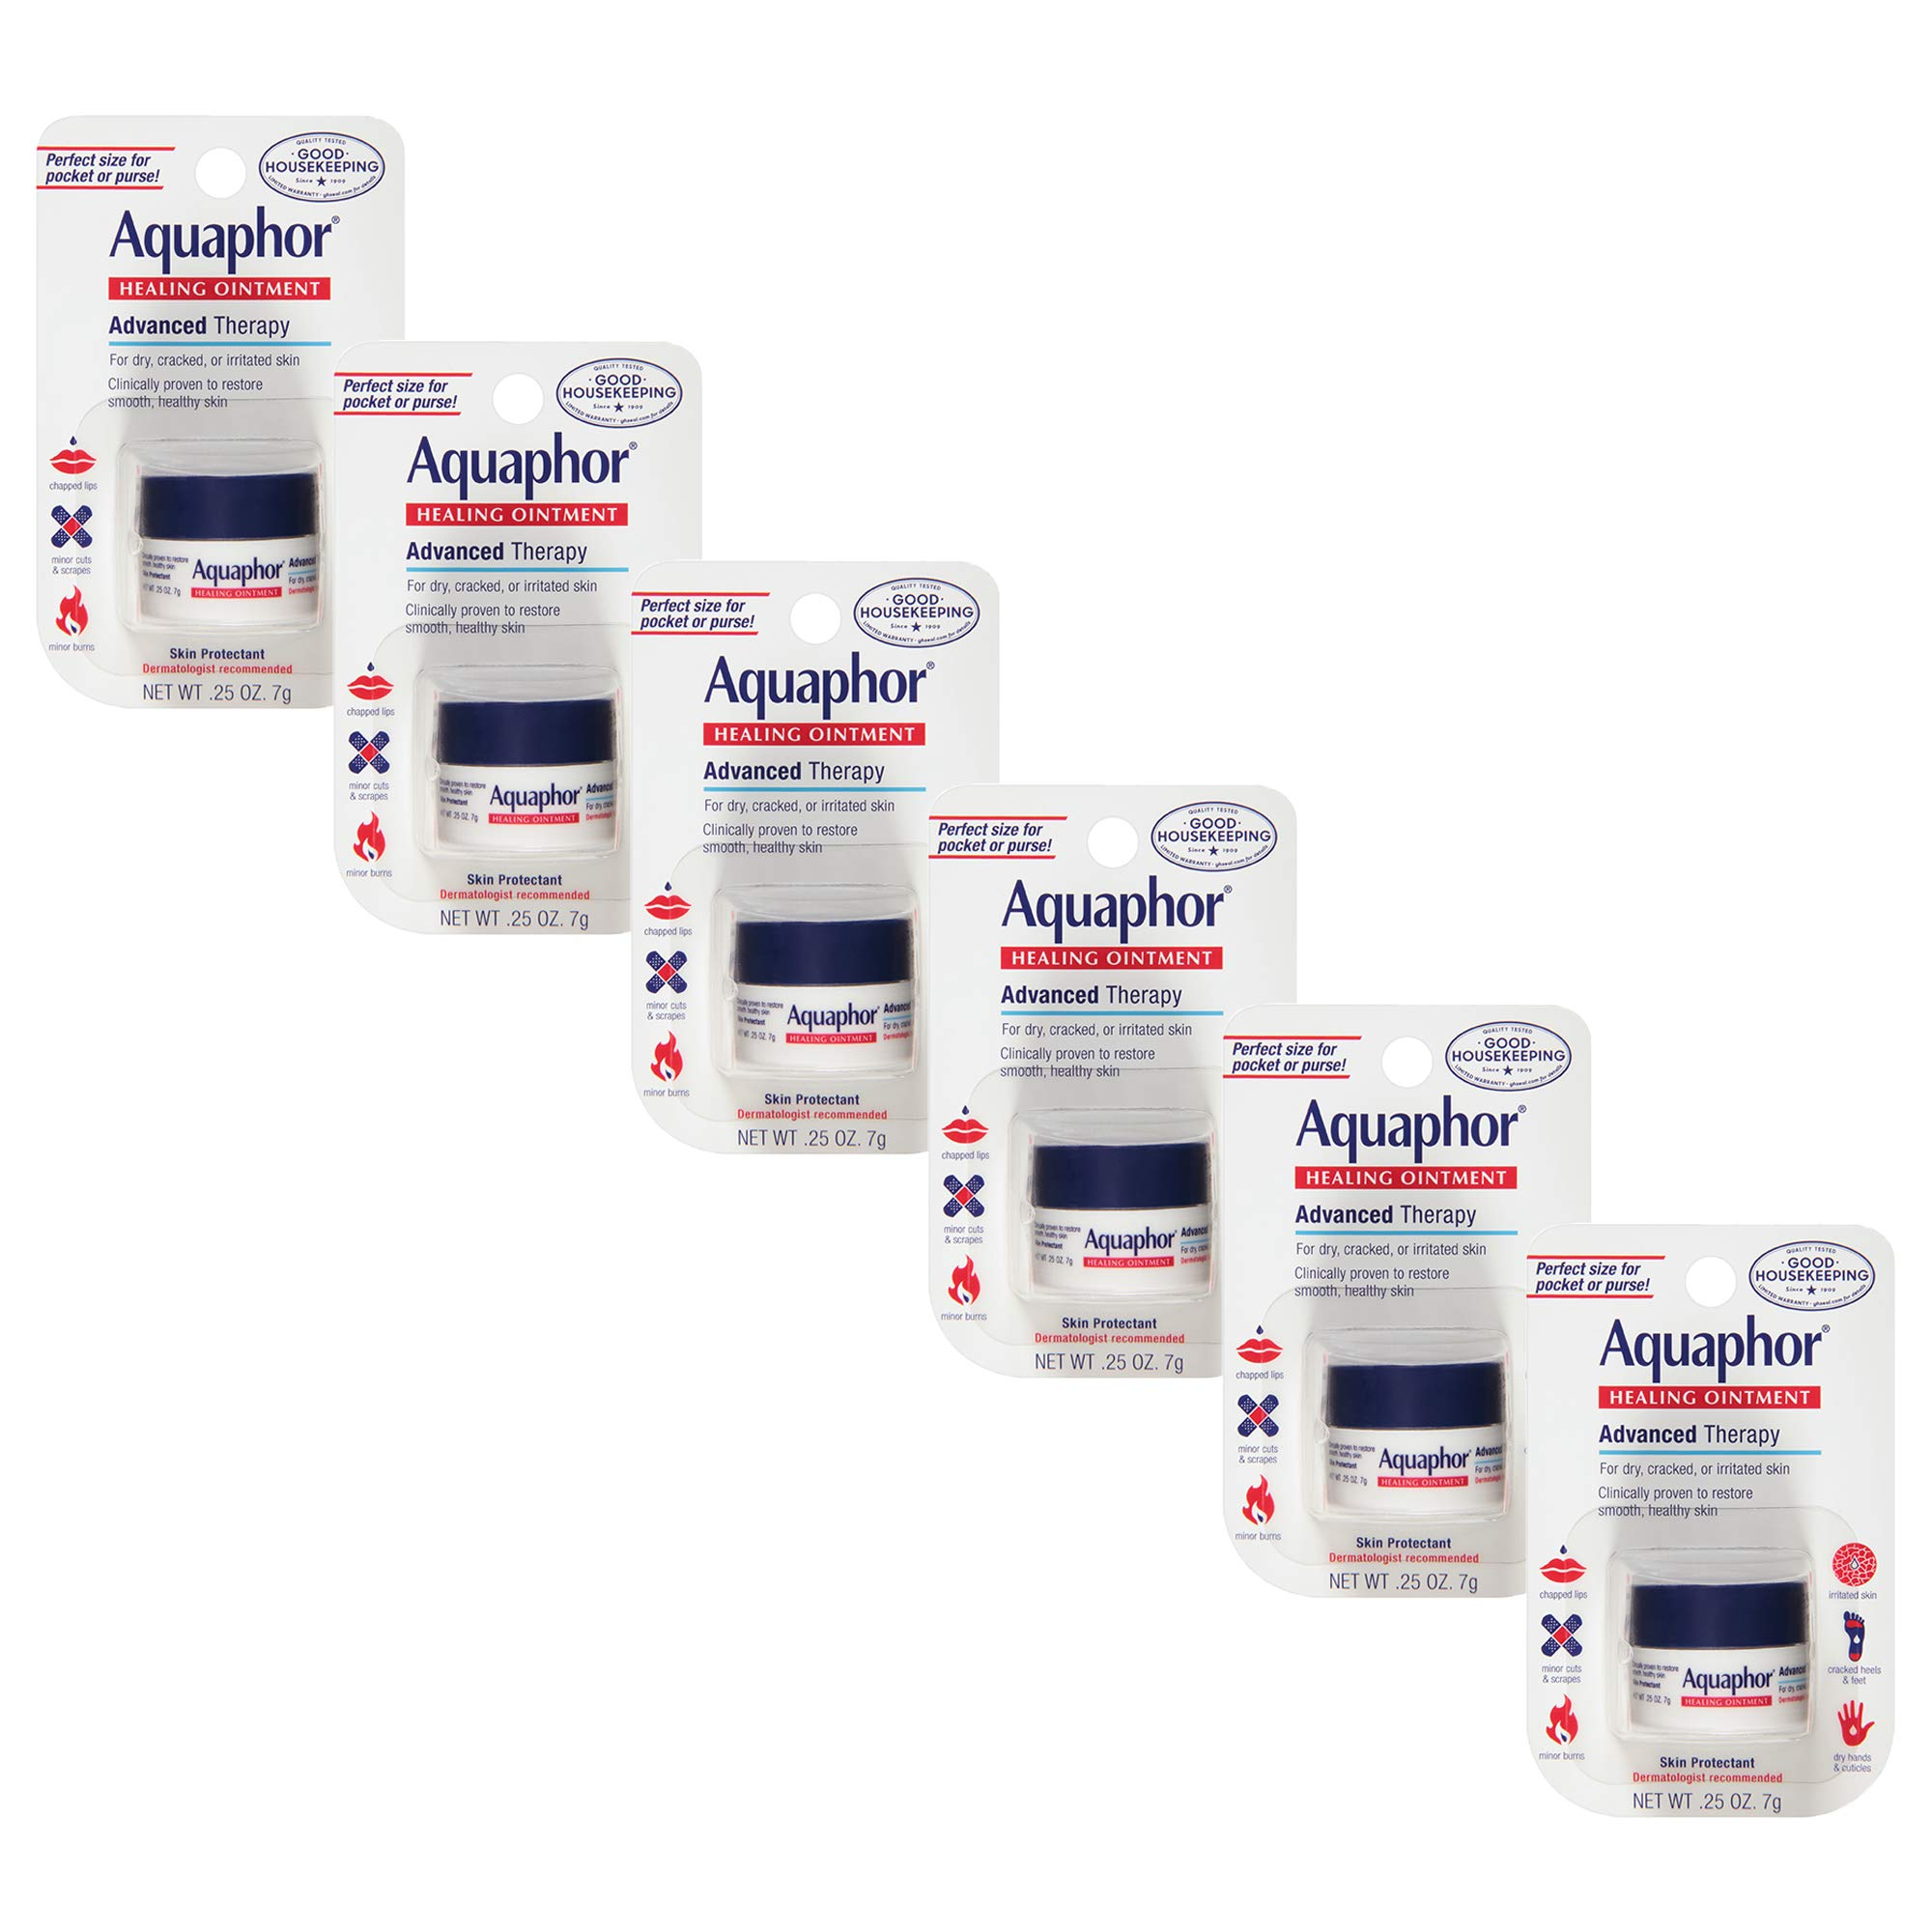 Aquaphor Healing Ointment - Pack of 6, To Relieve Chapped, Dry, Cracked Skin On-the-Go - .25 oz. Mini Jar